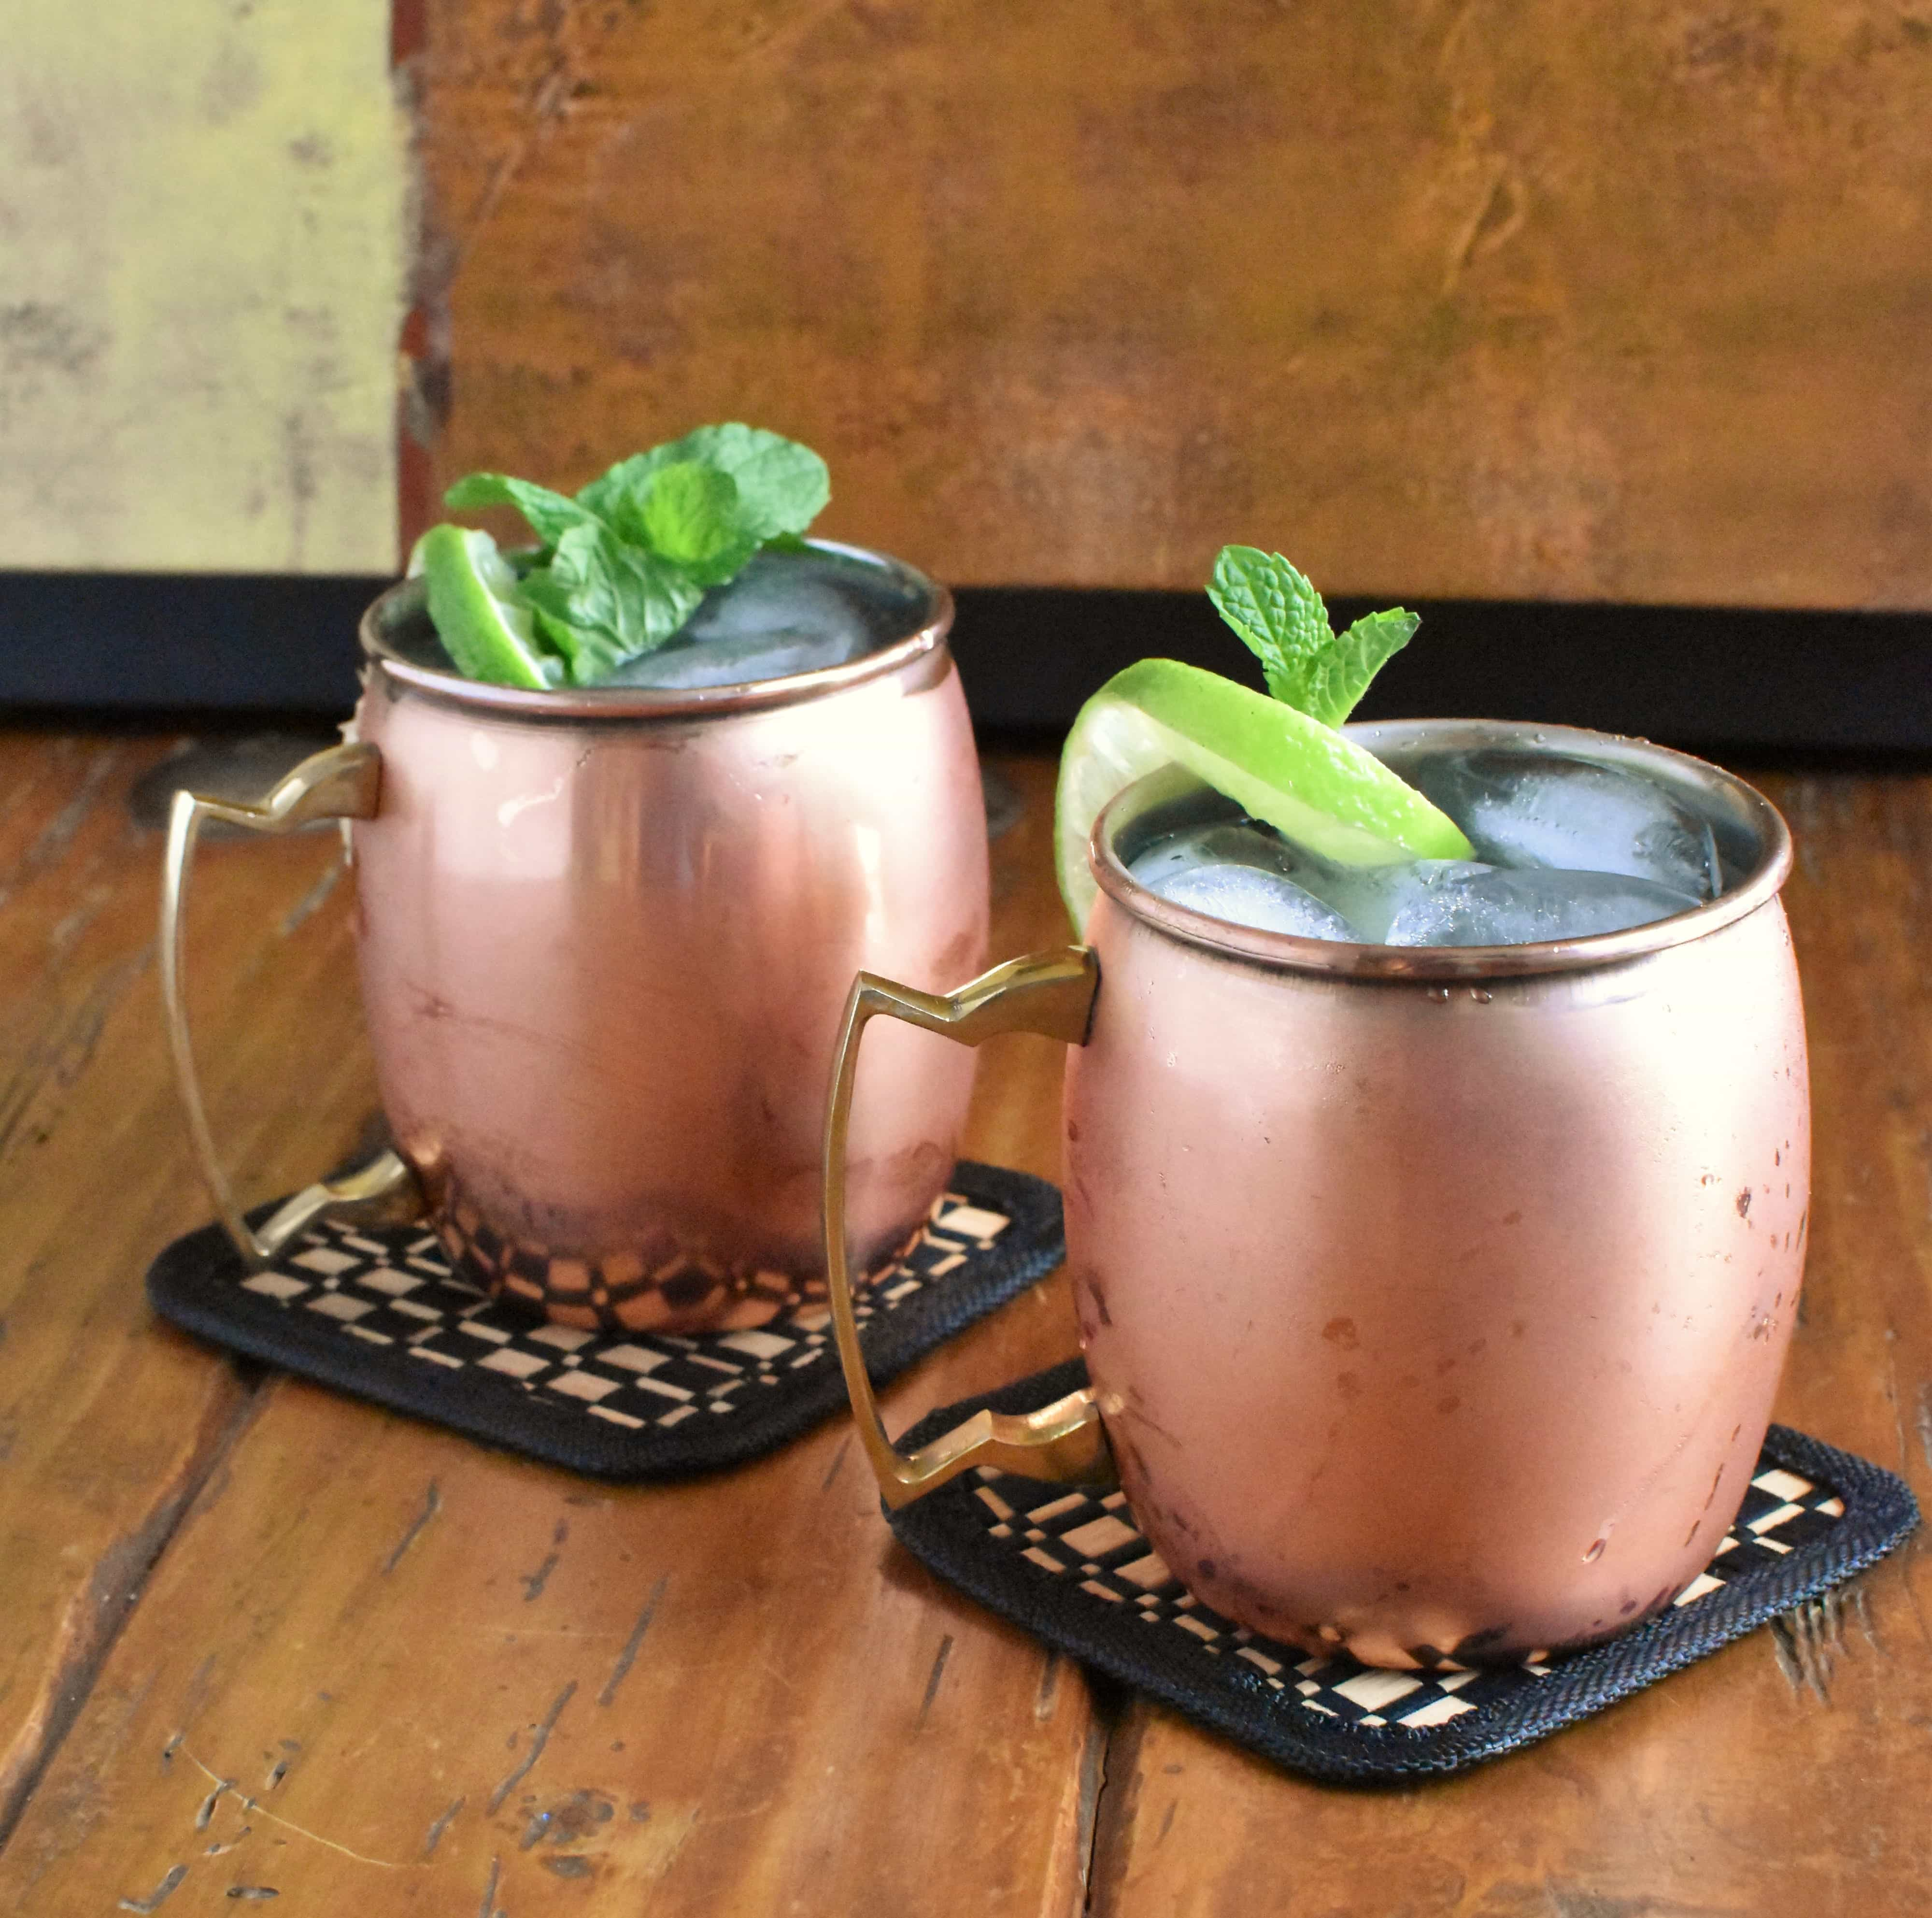 Moscow Mule - What the Heck is it Anyway? - The Spicy Apron